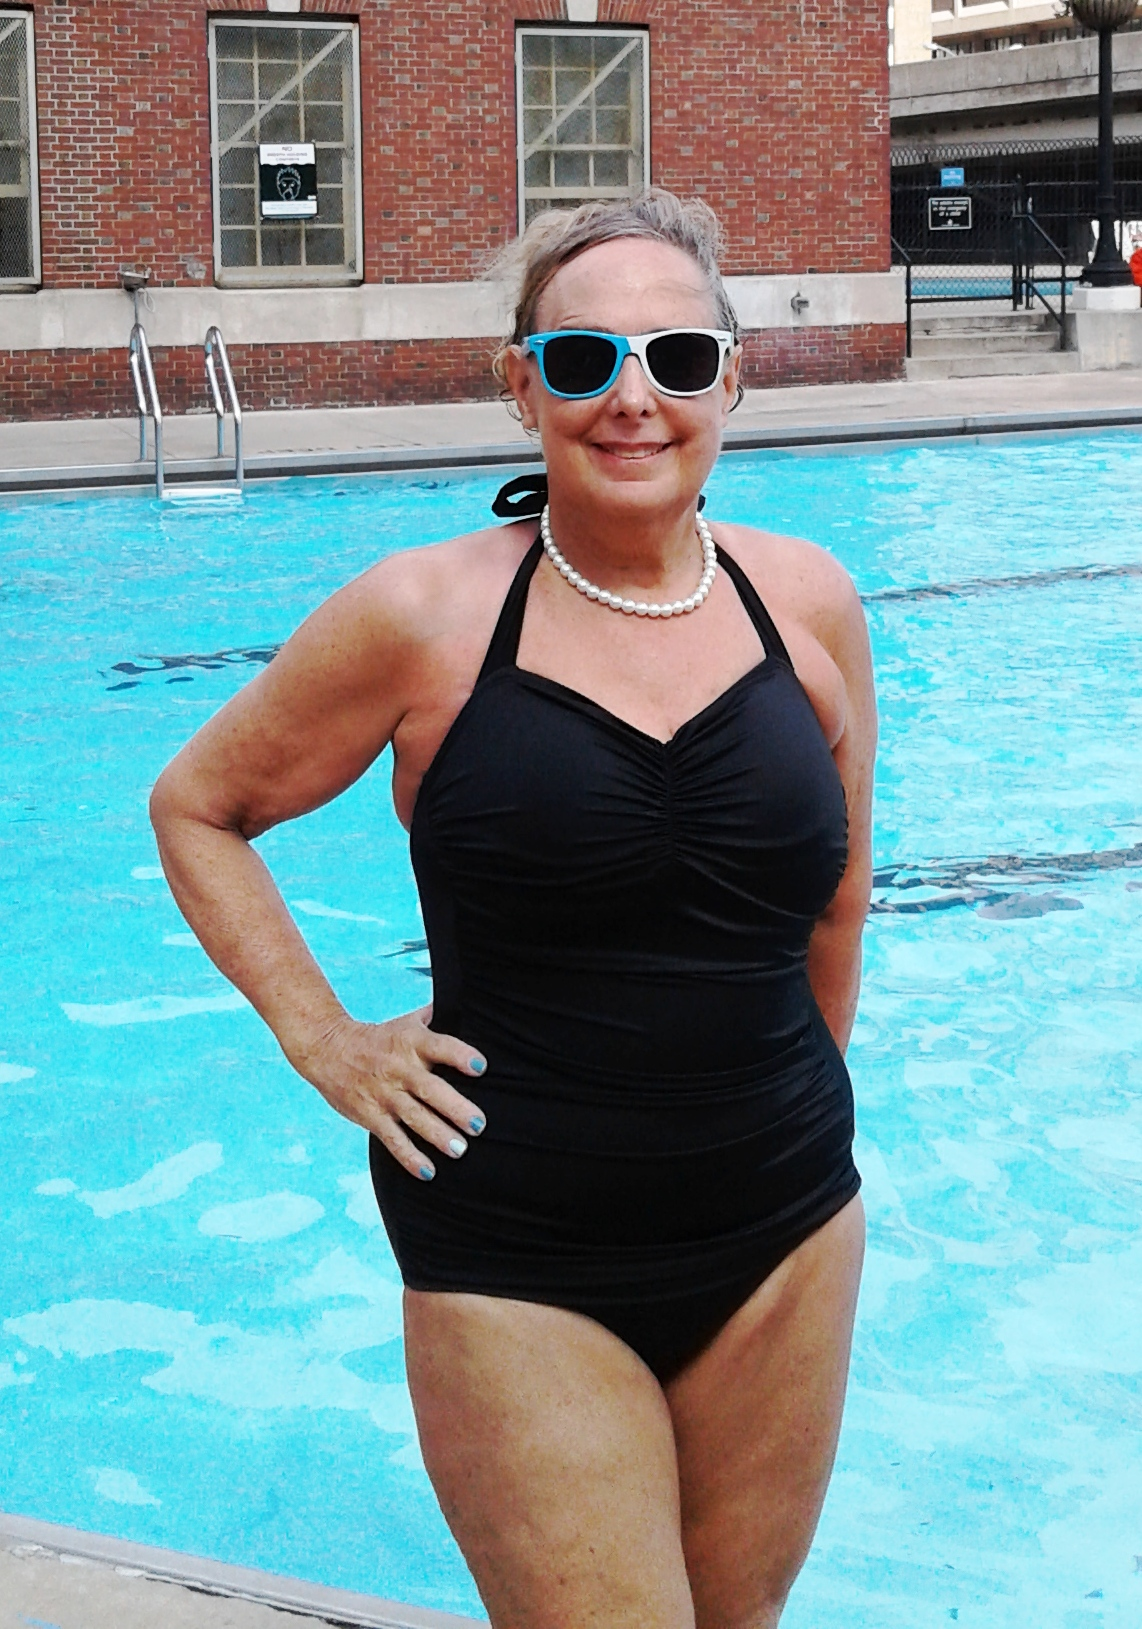 63cd5de7c4 Jane in her Black Classic Sheath: Jane is a world class swimmer and an  educator